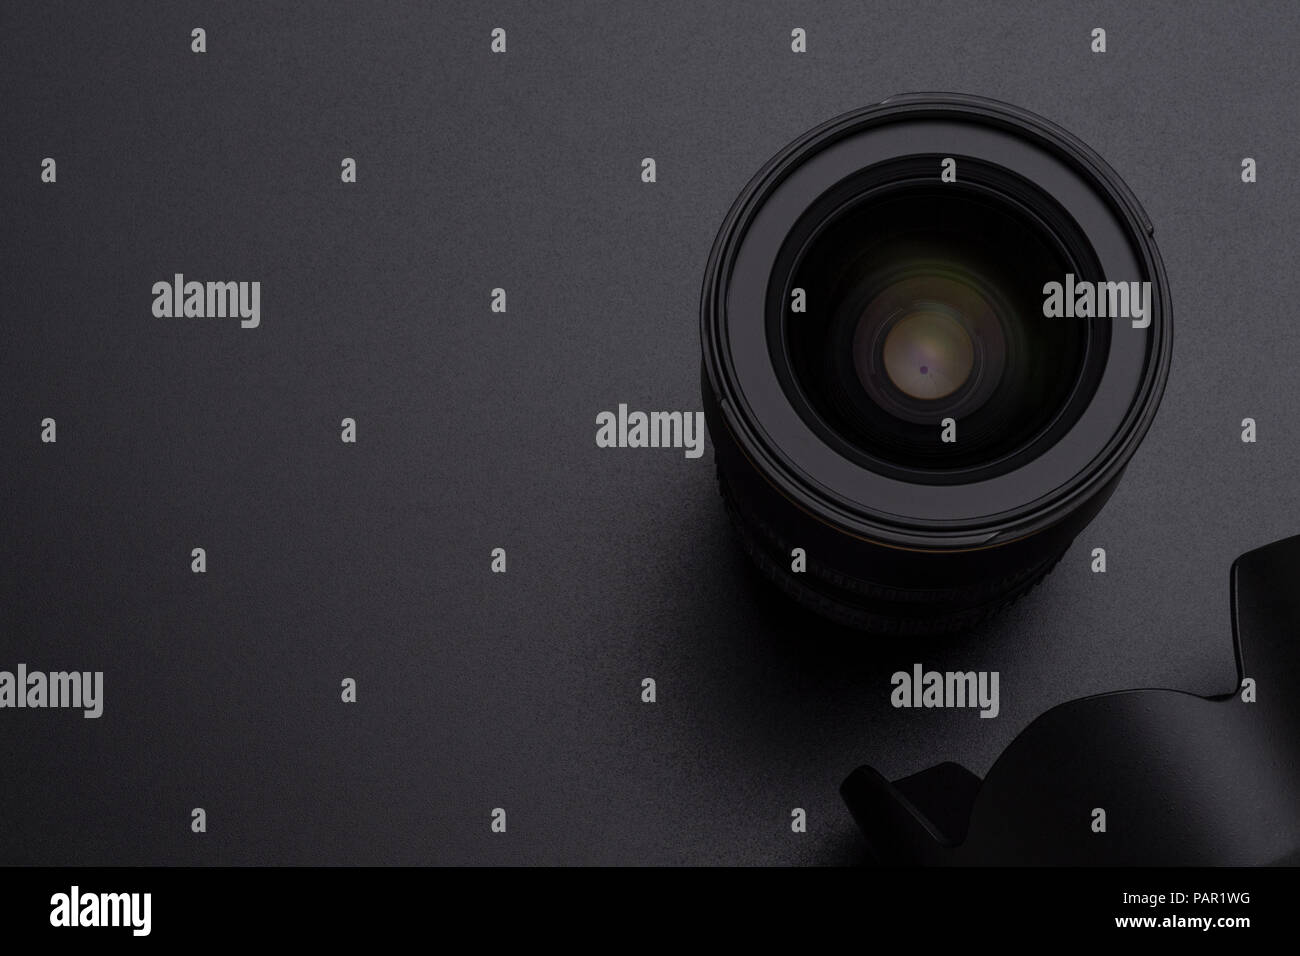 Photo DSLR camera or video lens and hood close-up image on black background - Stock Image